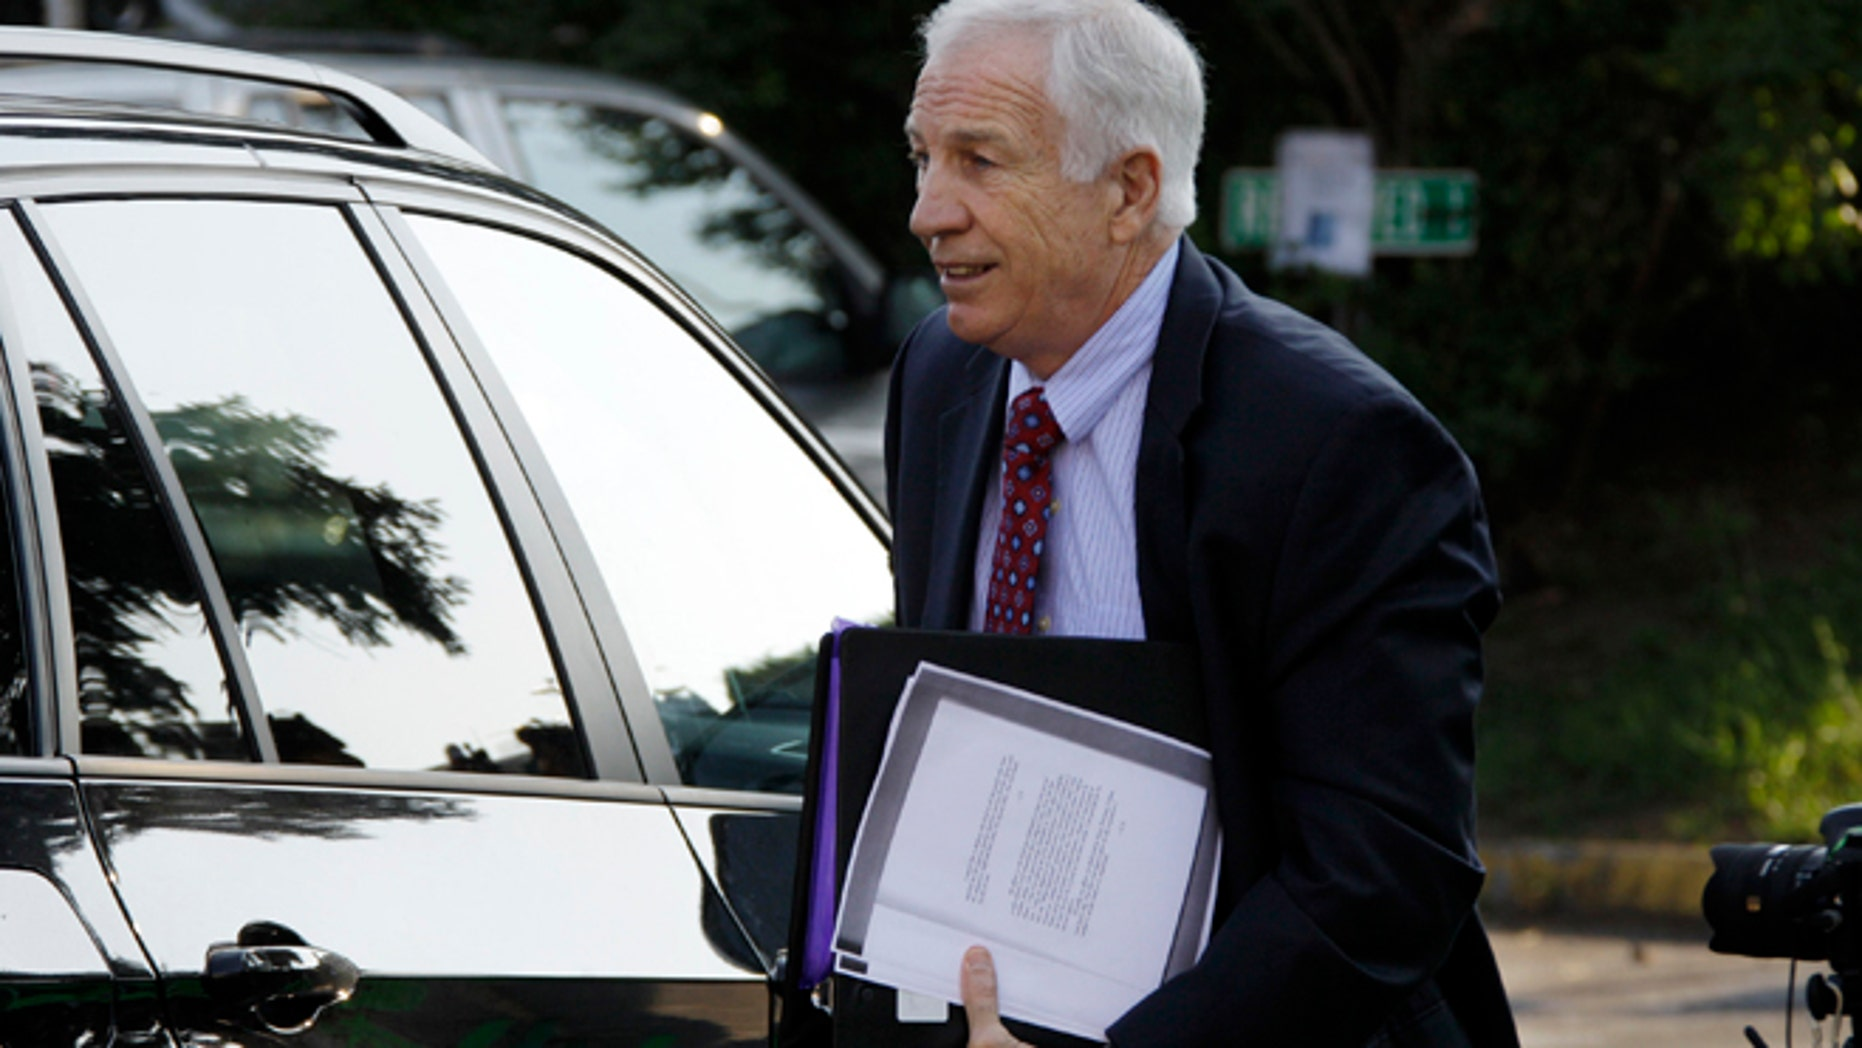 June 20: Former Penn State University assistant football coach Jerry Sandusky arrives at the Centre County Courthouse in Bellefonte, Pa.